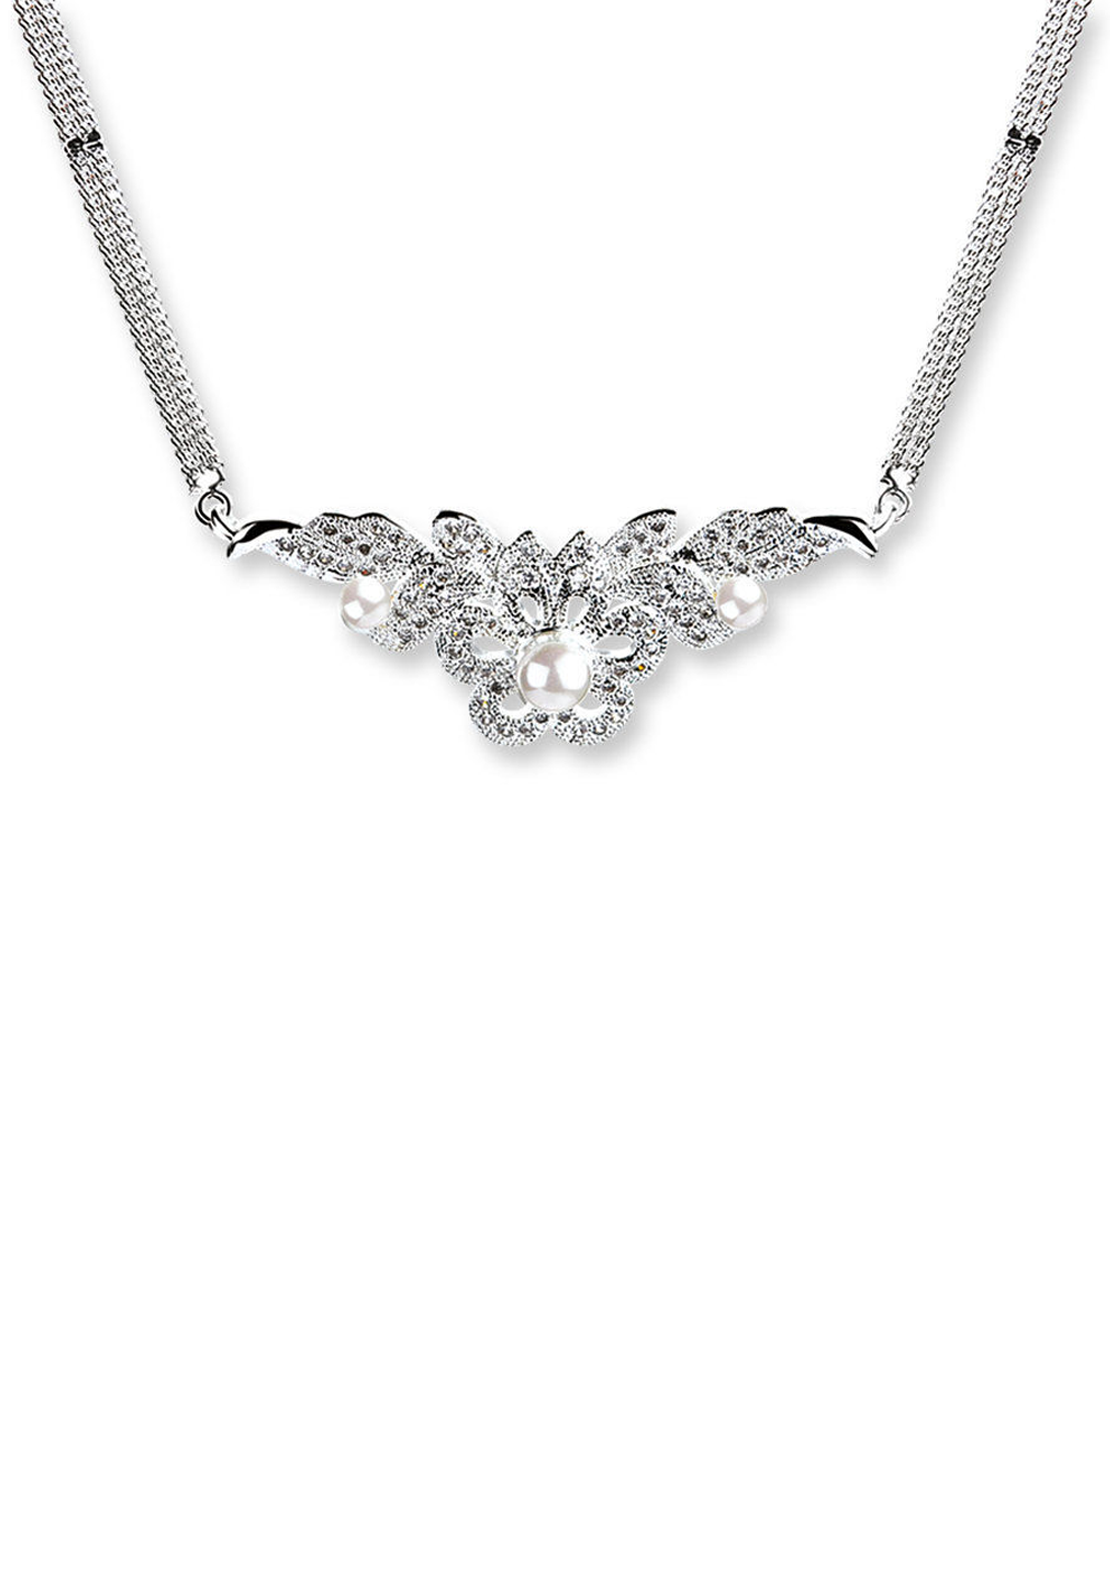 Newbridge Princess Grace Collection Necklace, Pearl